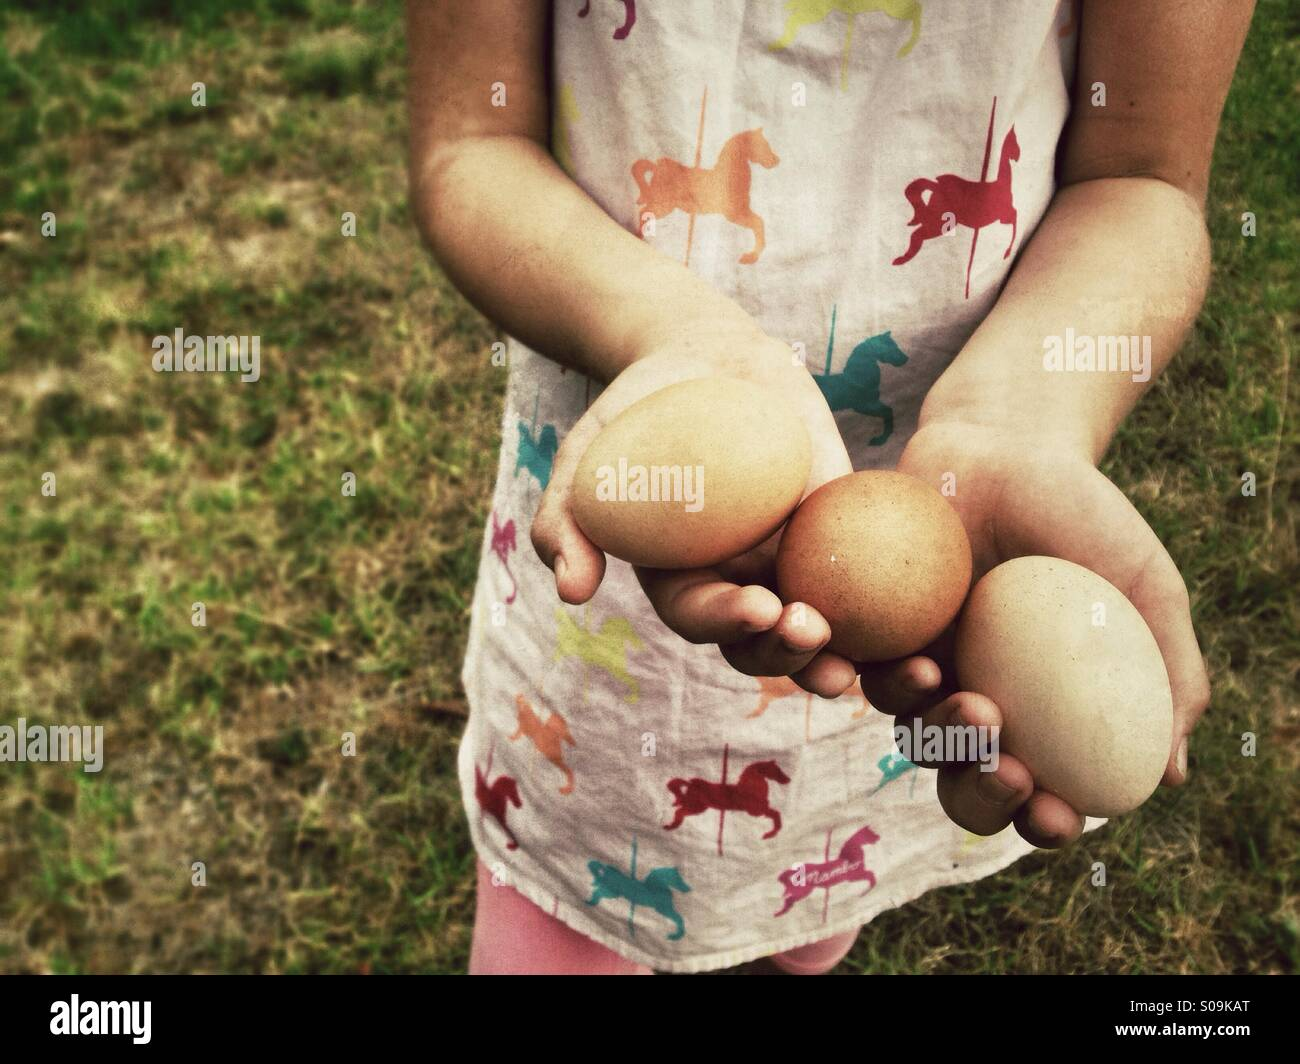 Three fresh eggs in a child hands. - Stock Image